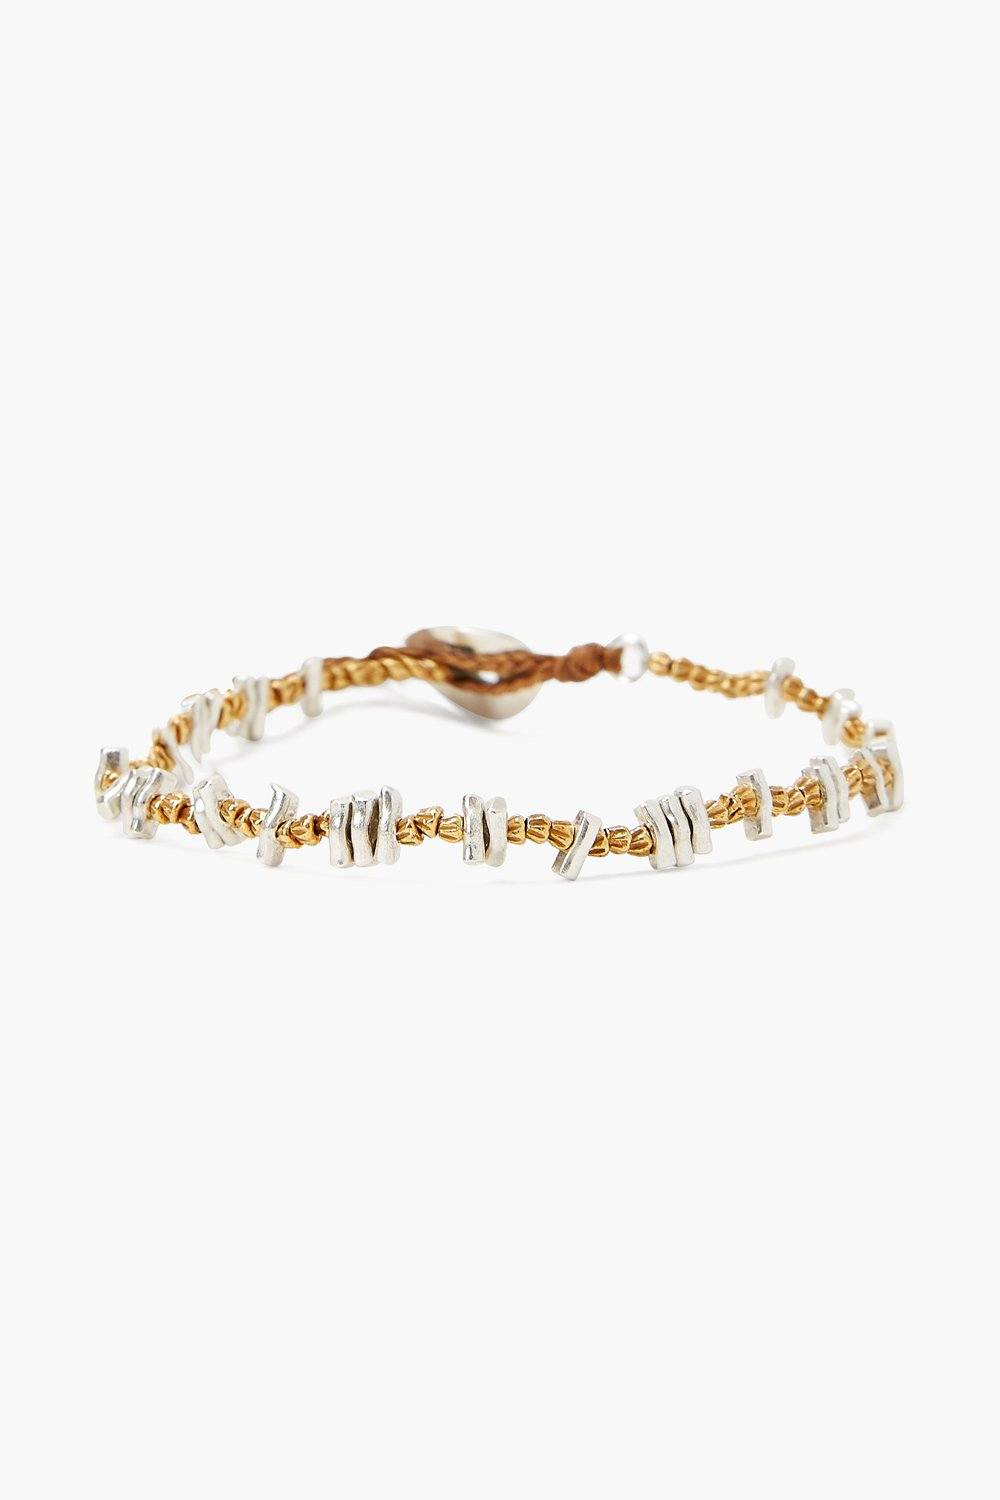 Etched Silver and Gold Nugget Bracelet